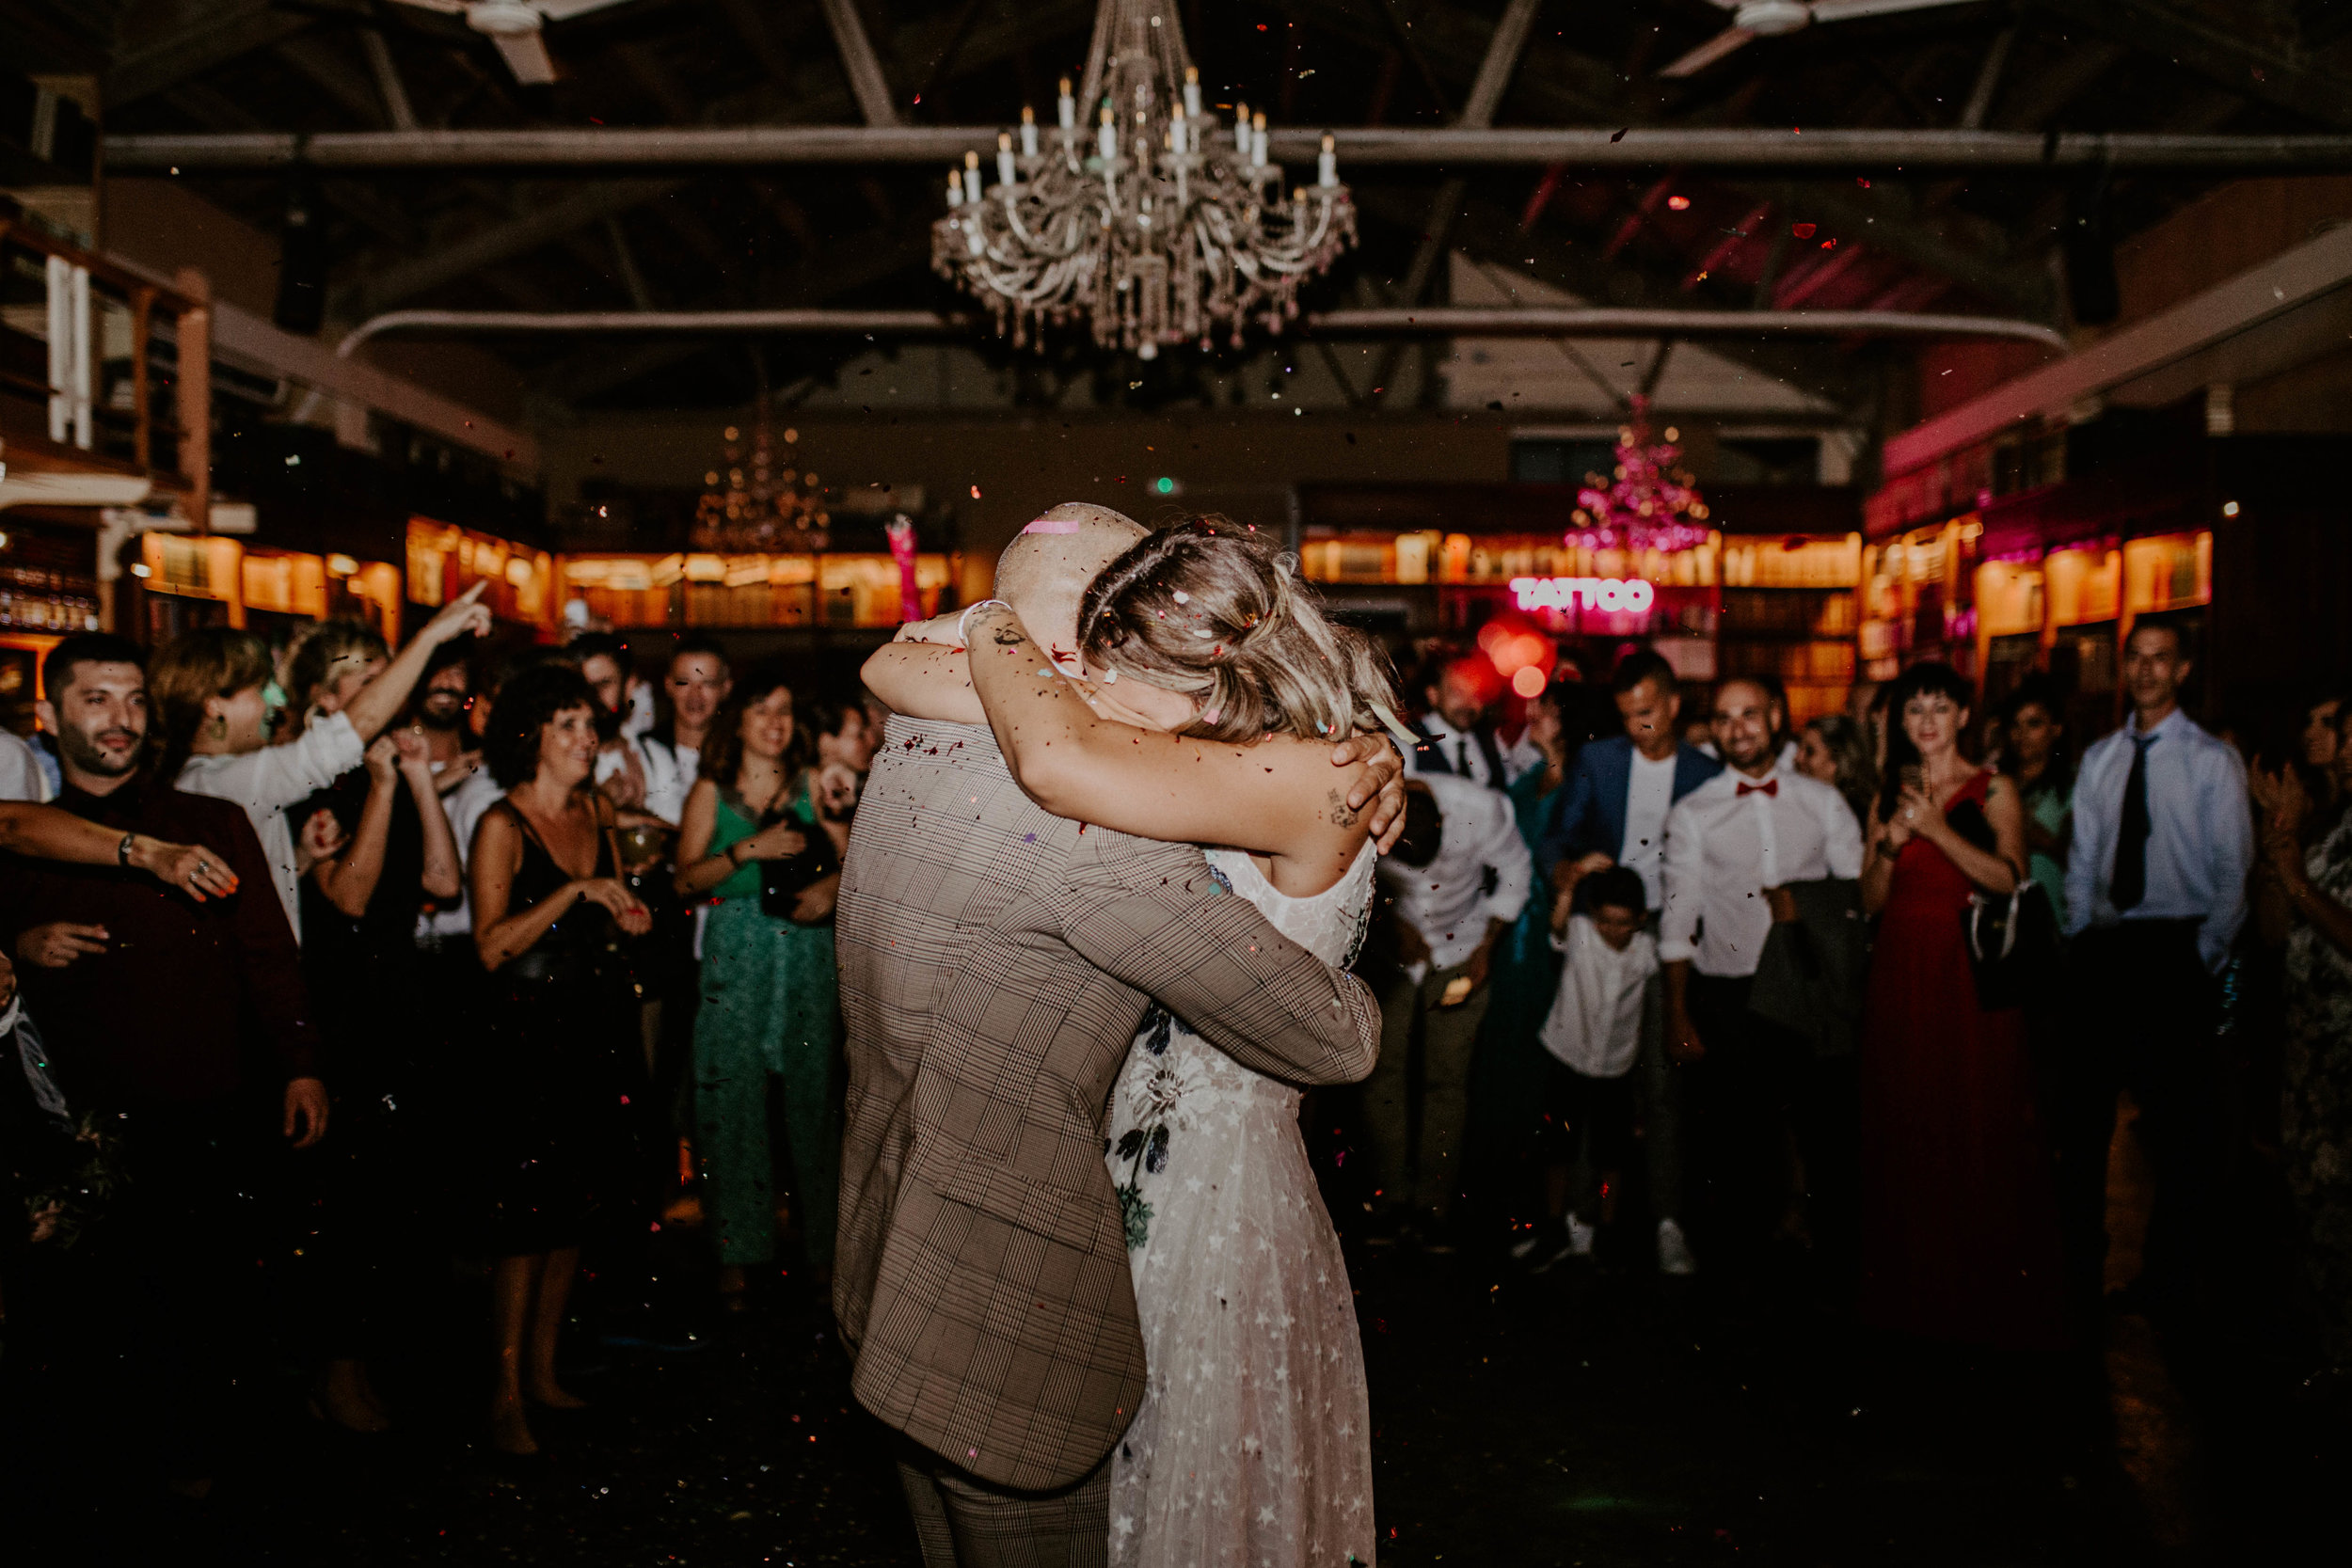 thenortherngirlphotography_bodasindustriales_bodasdiferentes_weddingphotographer_spanishphotographer_spanisgweddingphotographer_happyendings_mercantic_elsiglomercantic_antichrist_love_neon_weddingtattoo_CYNTHIAMANOLO-927.jpg